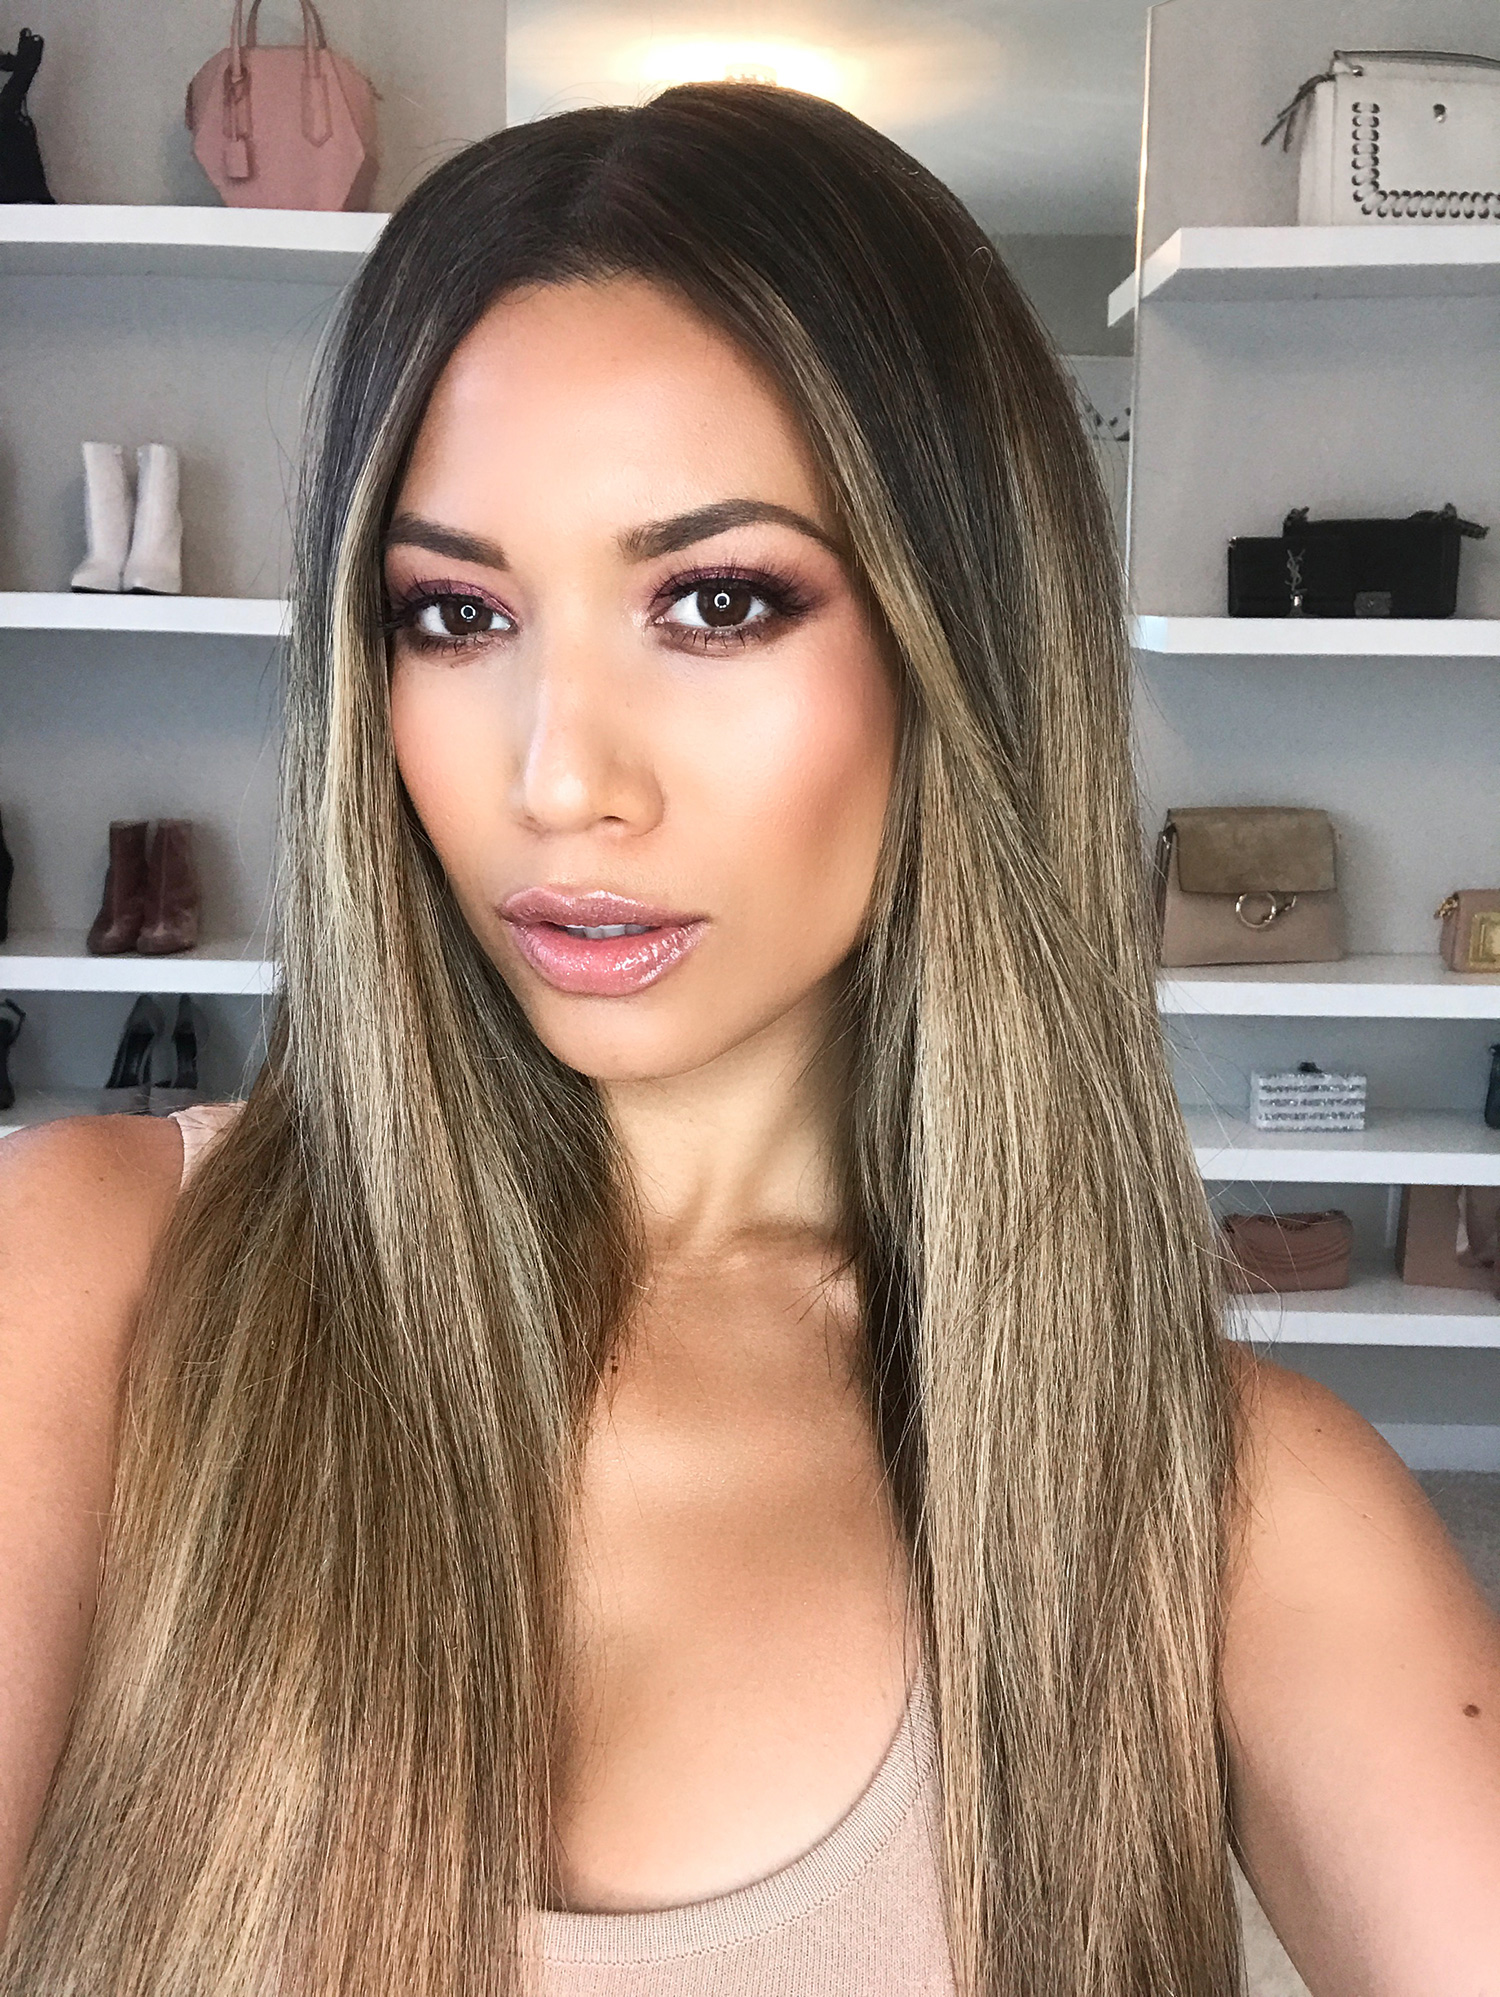 JLo Makeup Tutorial with straight flat hair